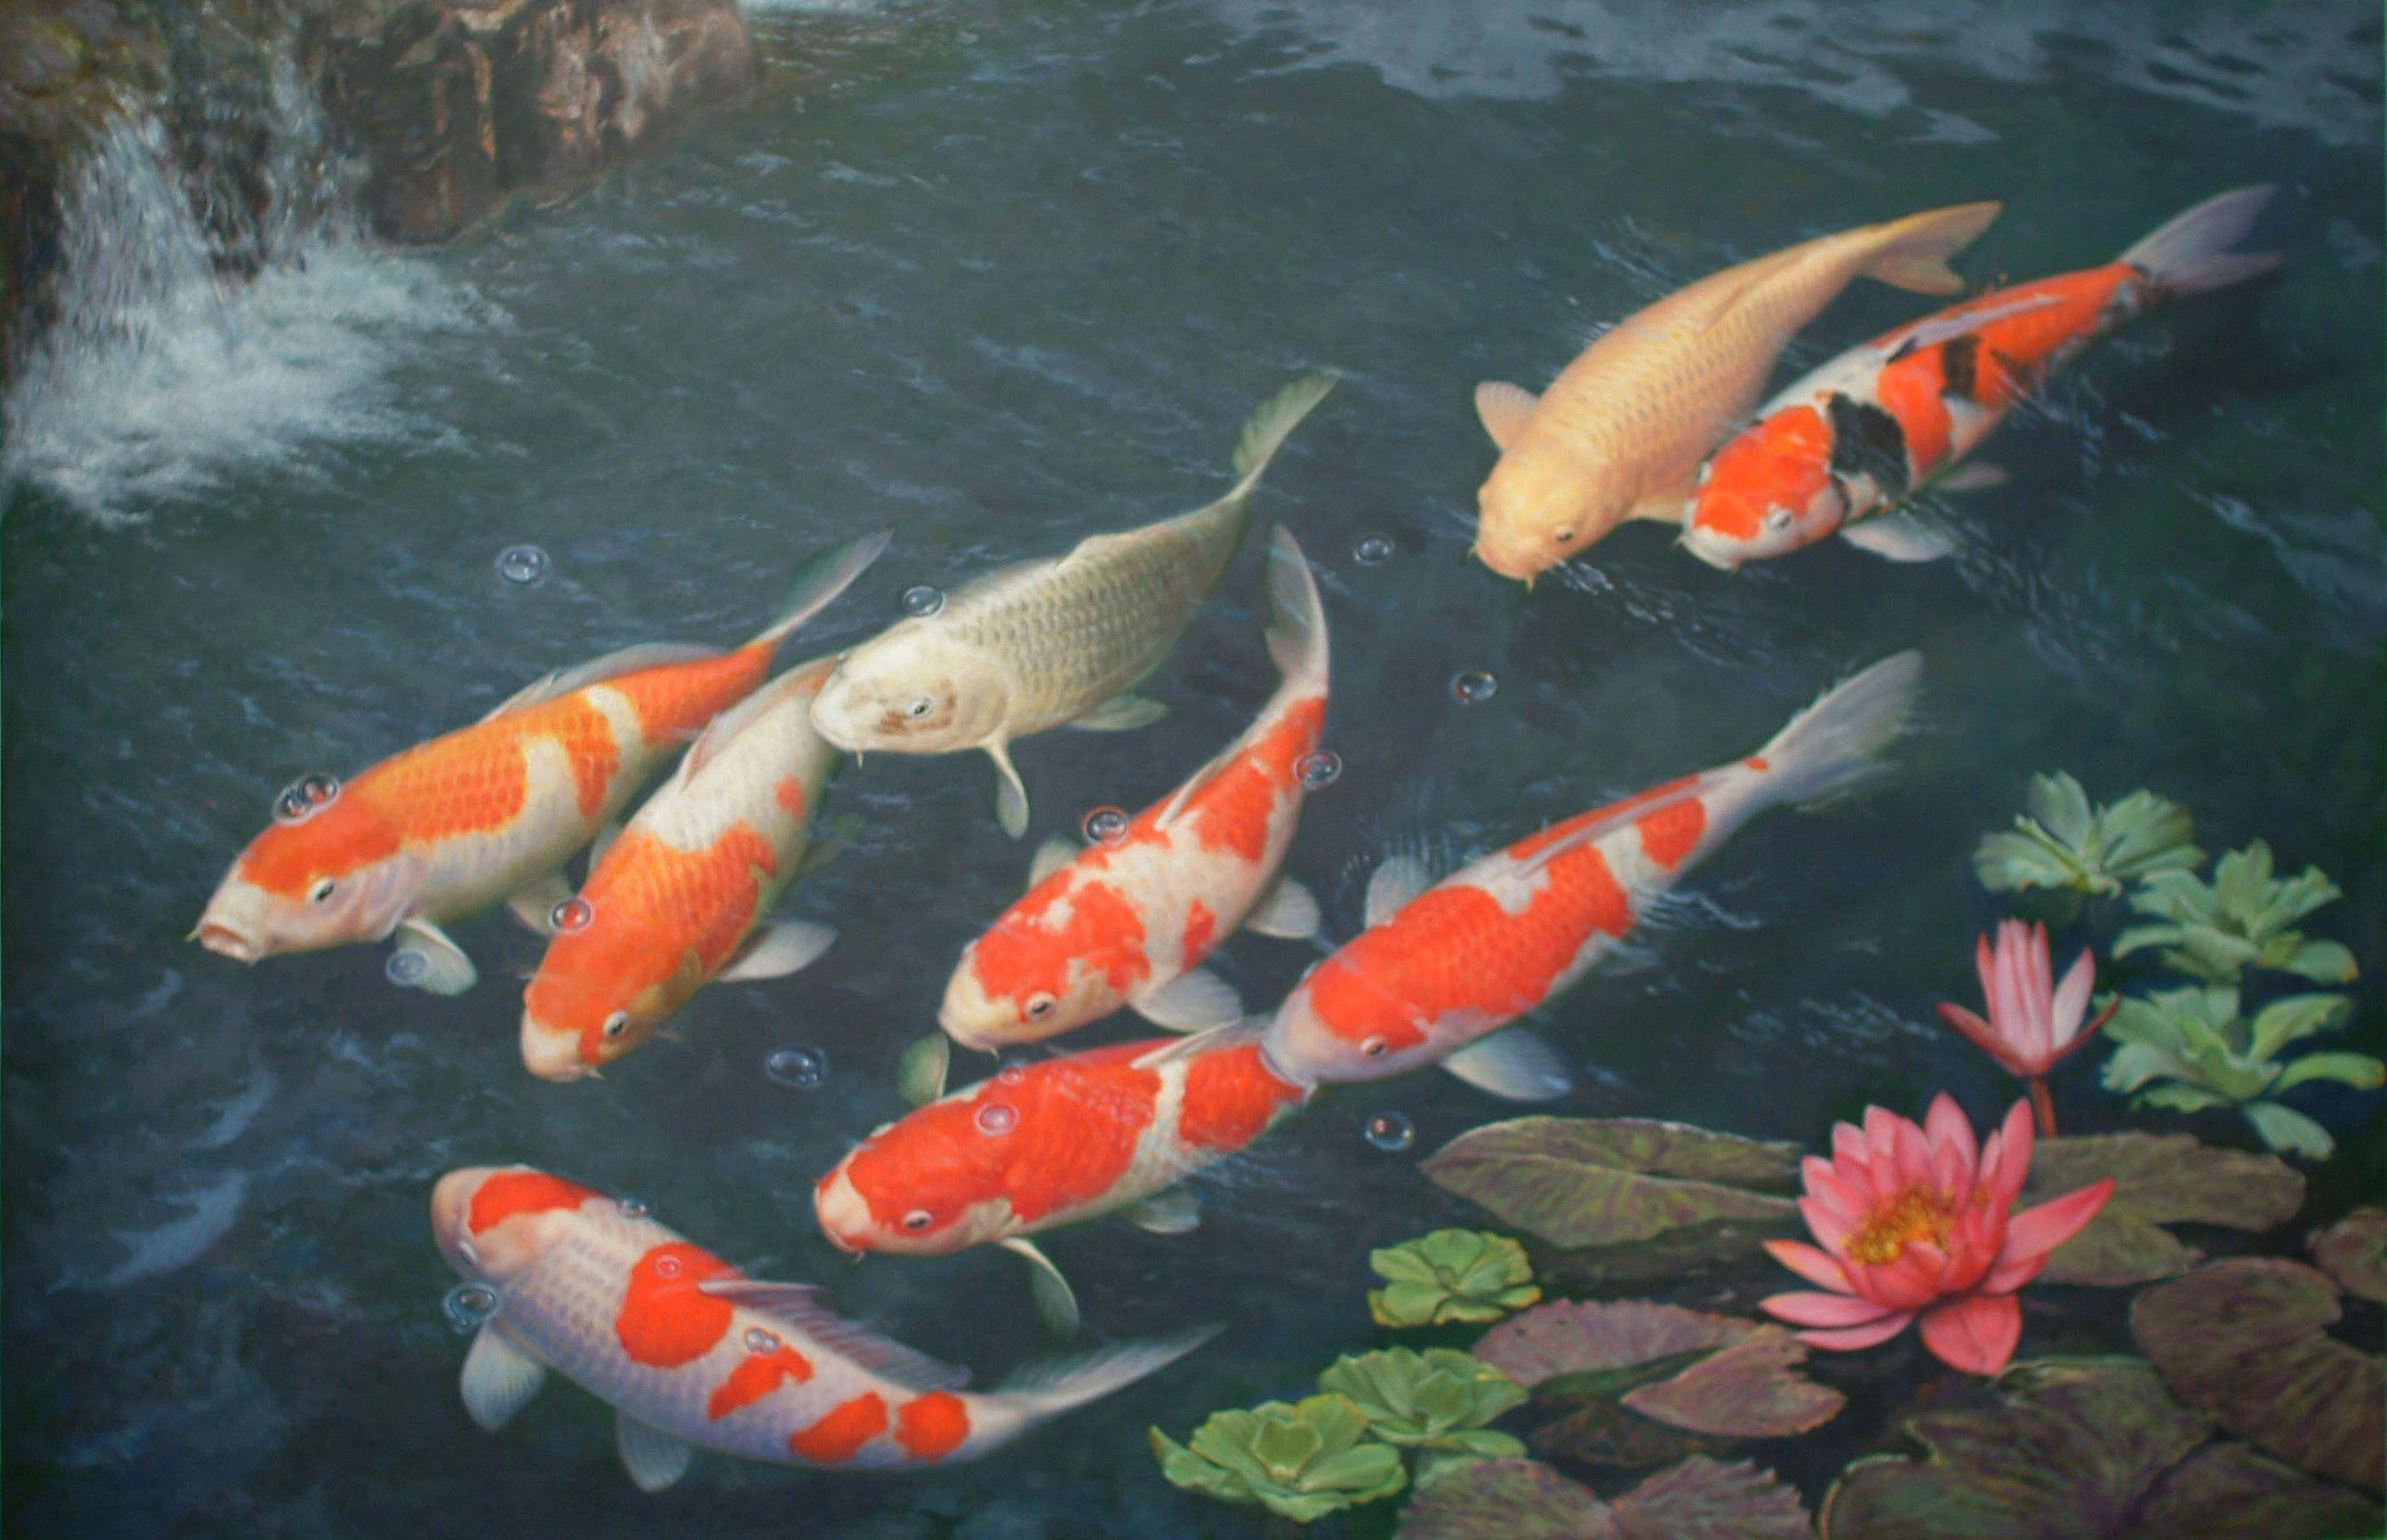 Koi fish wallpapers wallpaper cave for Koi carp fish information